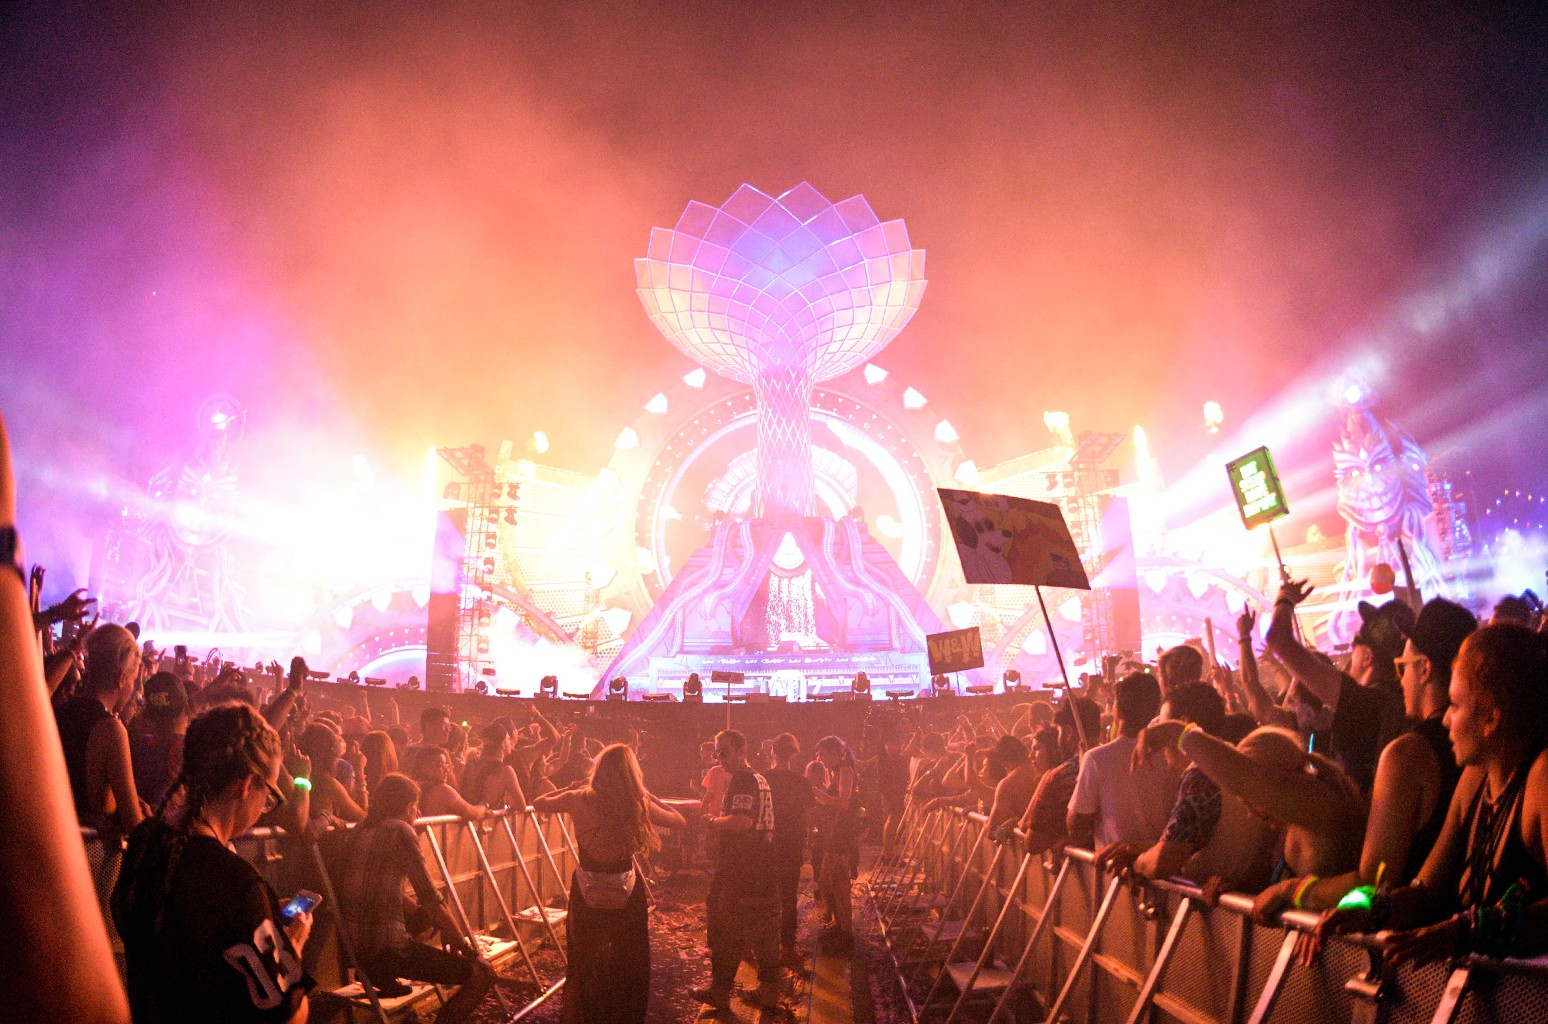 Atmosphere shot of the Kinetic Field stage during the 20th annual Electric Daisy Carnival at Las Vegas Motor Speedway on June 17, 2016 in Las Vegas.